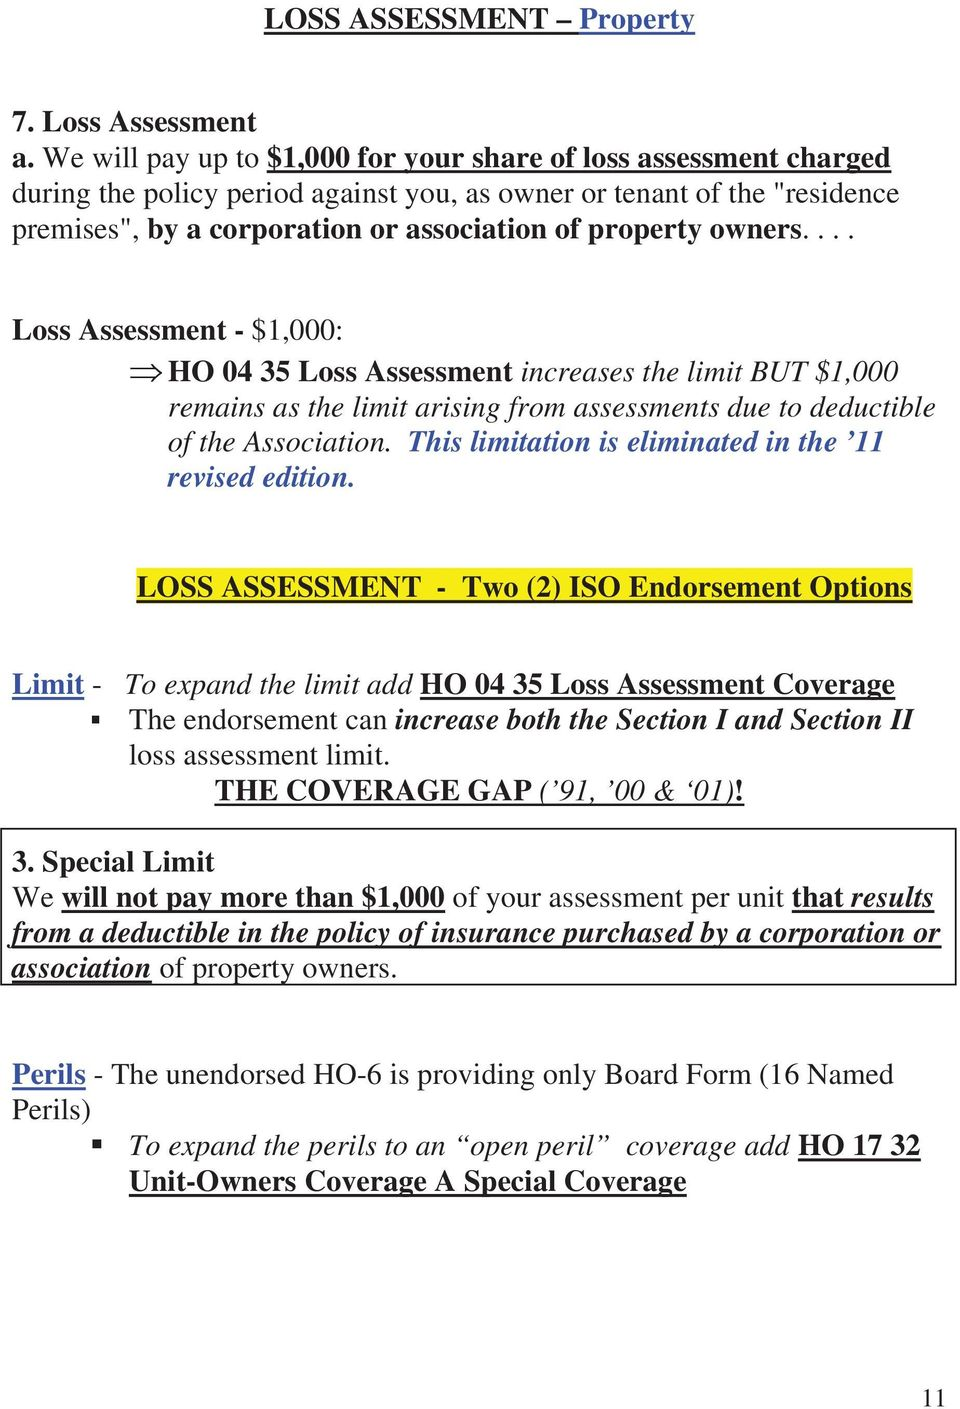 owners.... Loss Assessment - $1,000: HO 04 35 Loss Assessment increases the limit BUT $1,000 remains as the limit arising from assessments due to deductible of the Association.